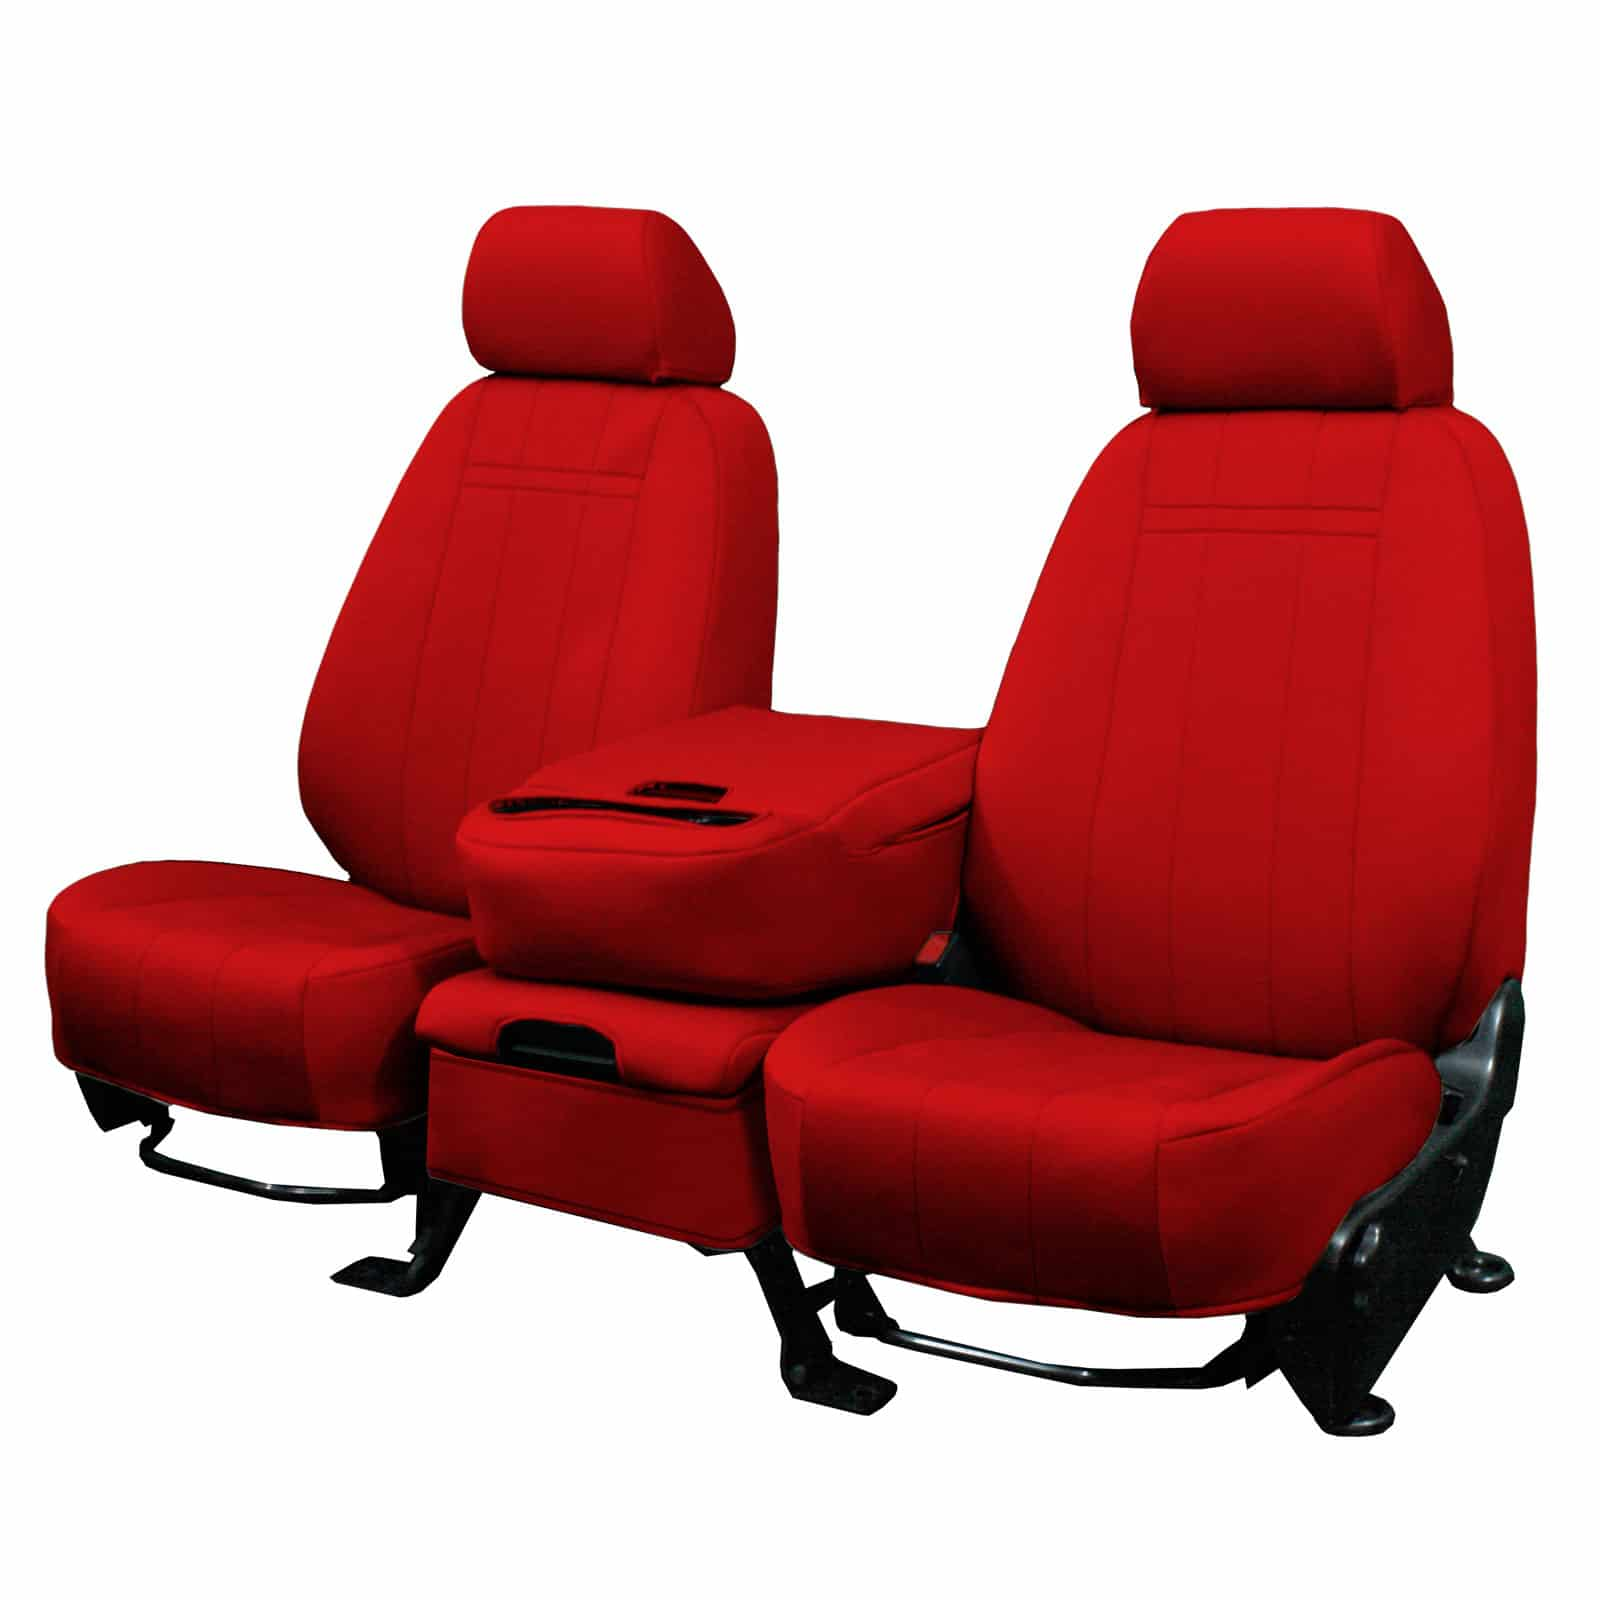 Where Can I Find Seat Covers Neosupreme Seat Covers